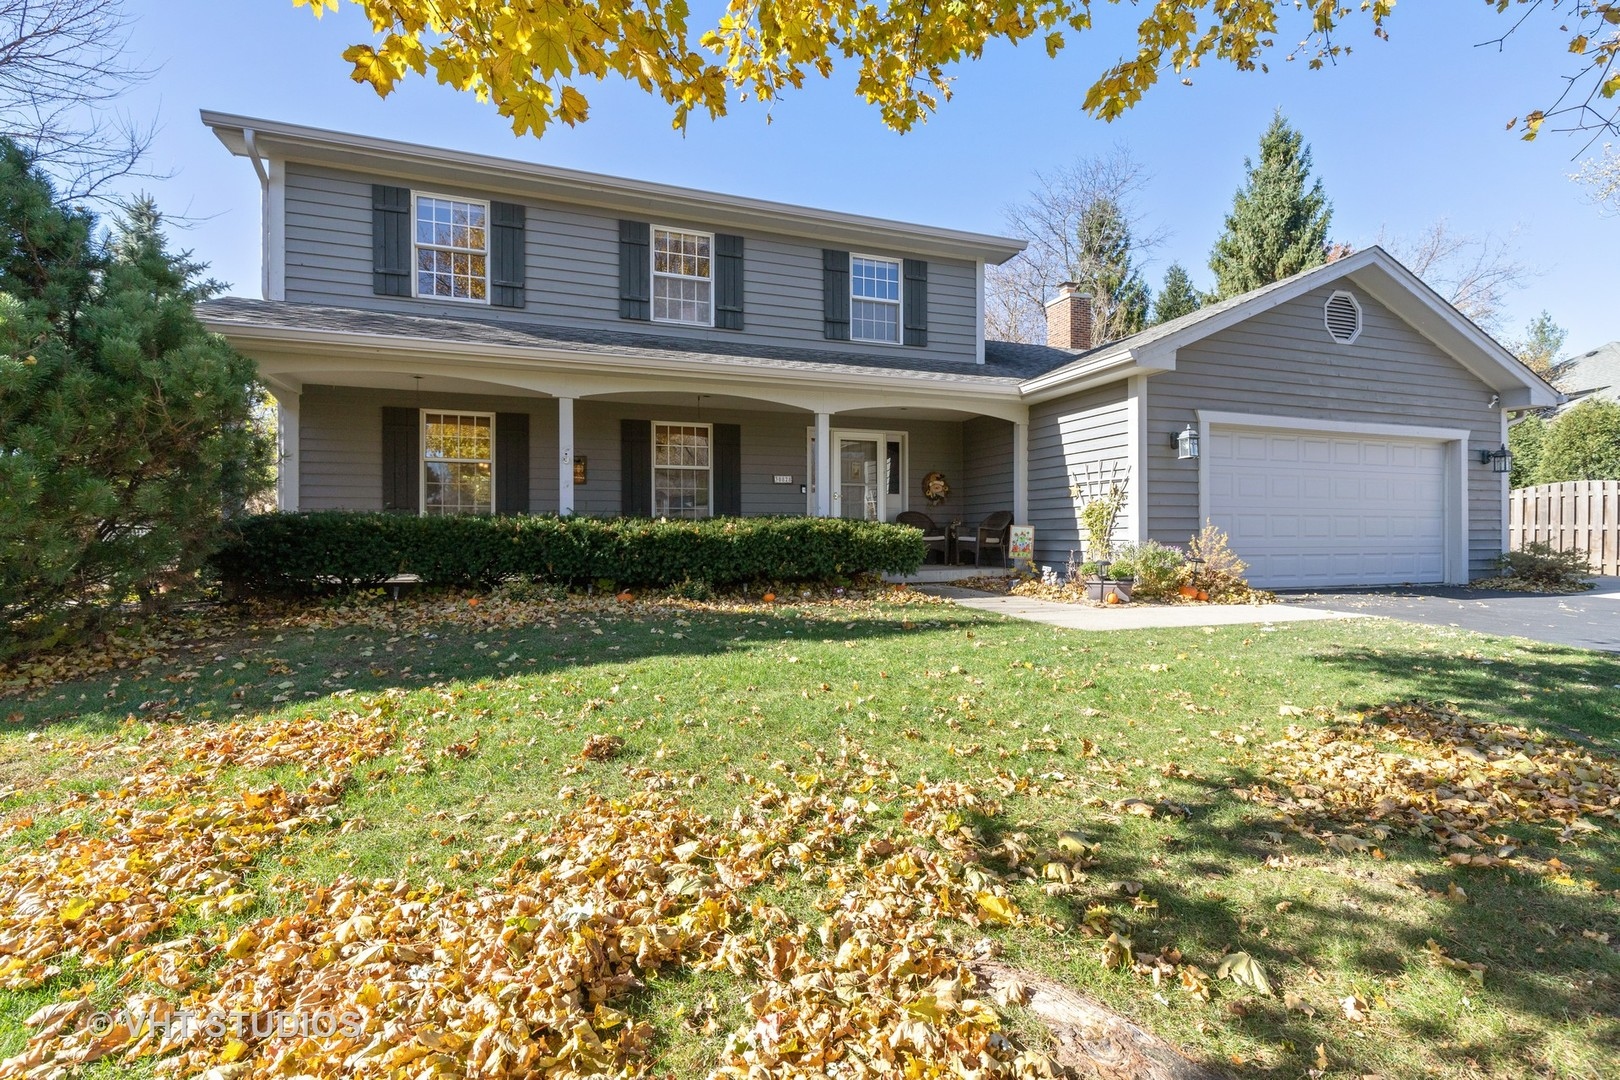 30828 N Leesley Court, Libertyville, Il 60048